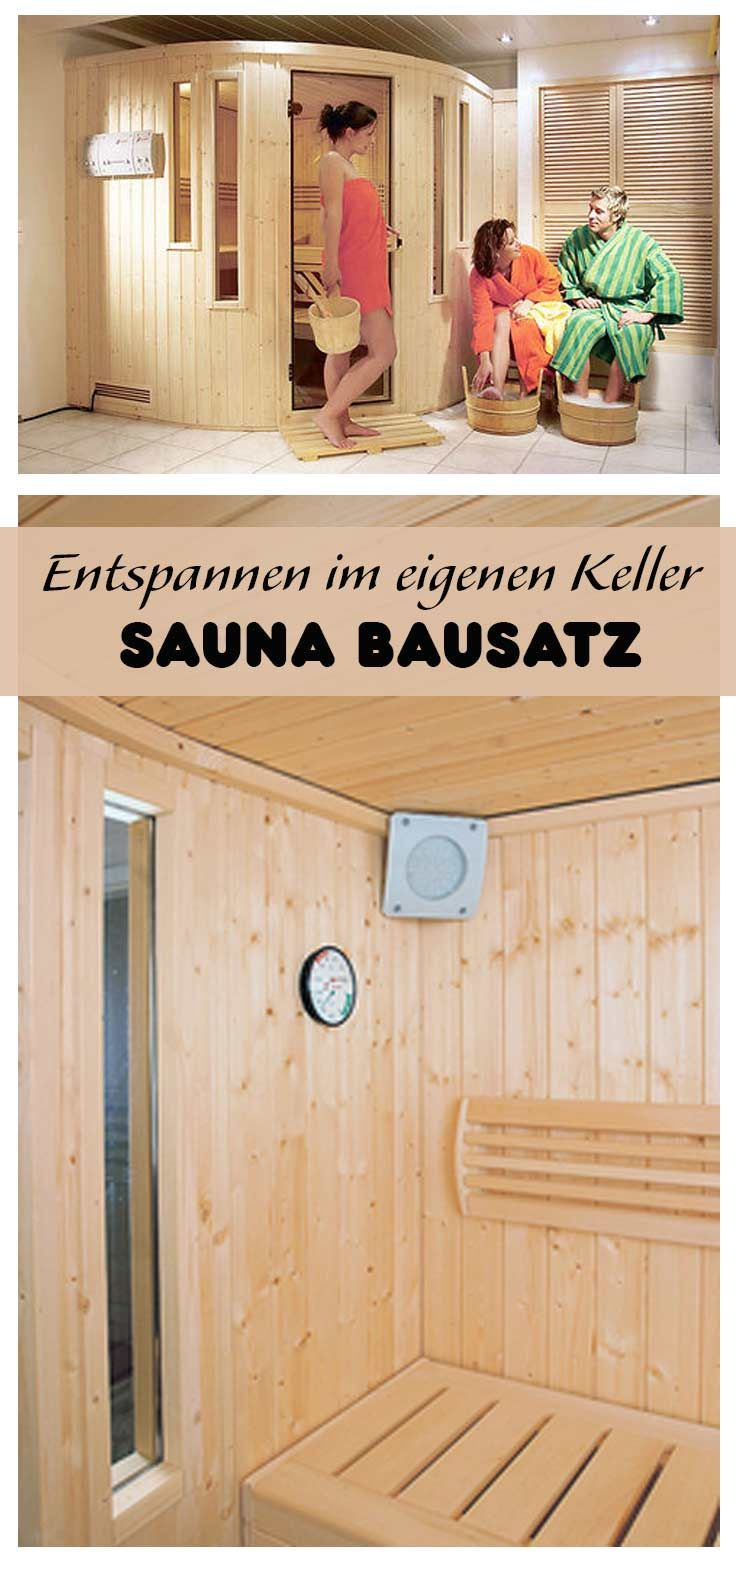 sauna im keller bausatz saunas und keller. Black Bedroom Furniture Sets. Home Design Ideas